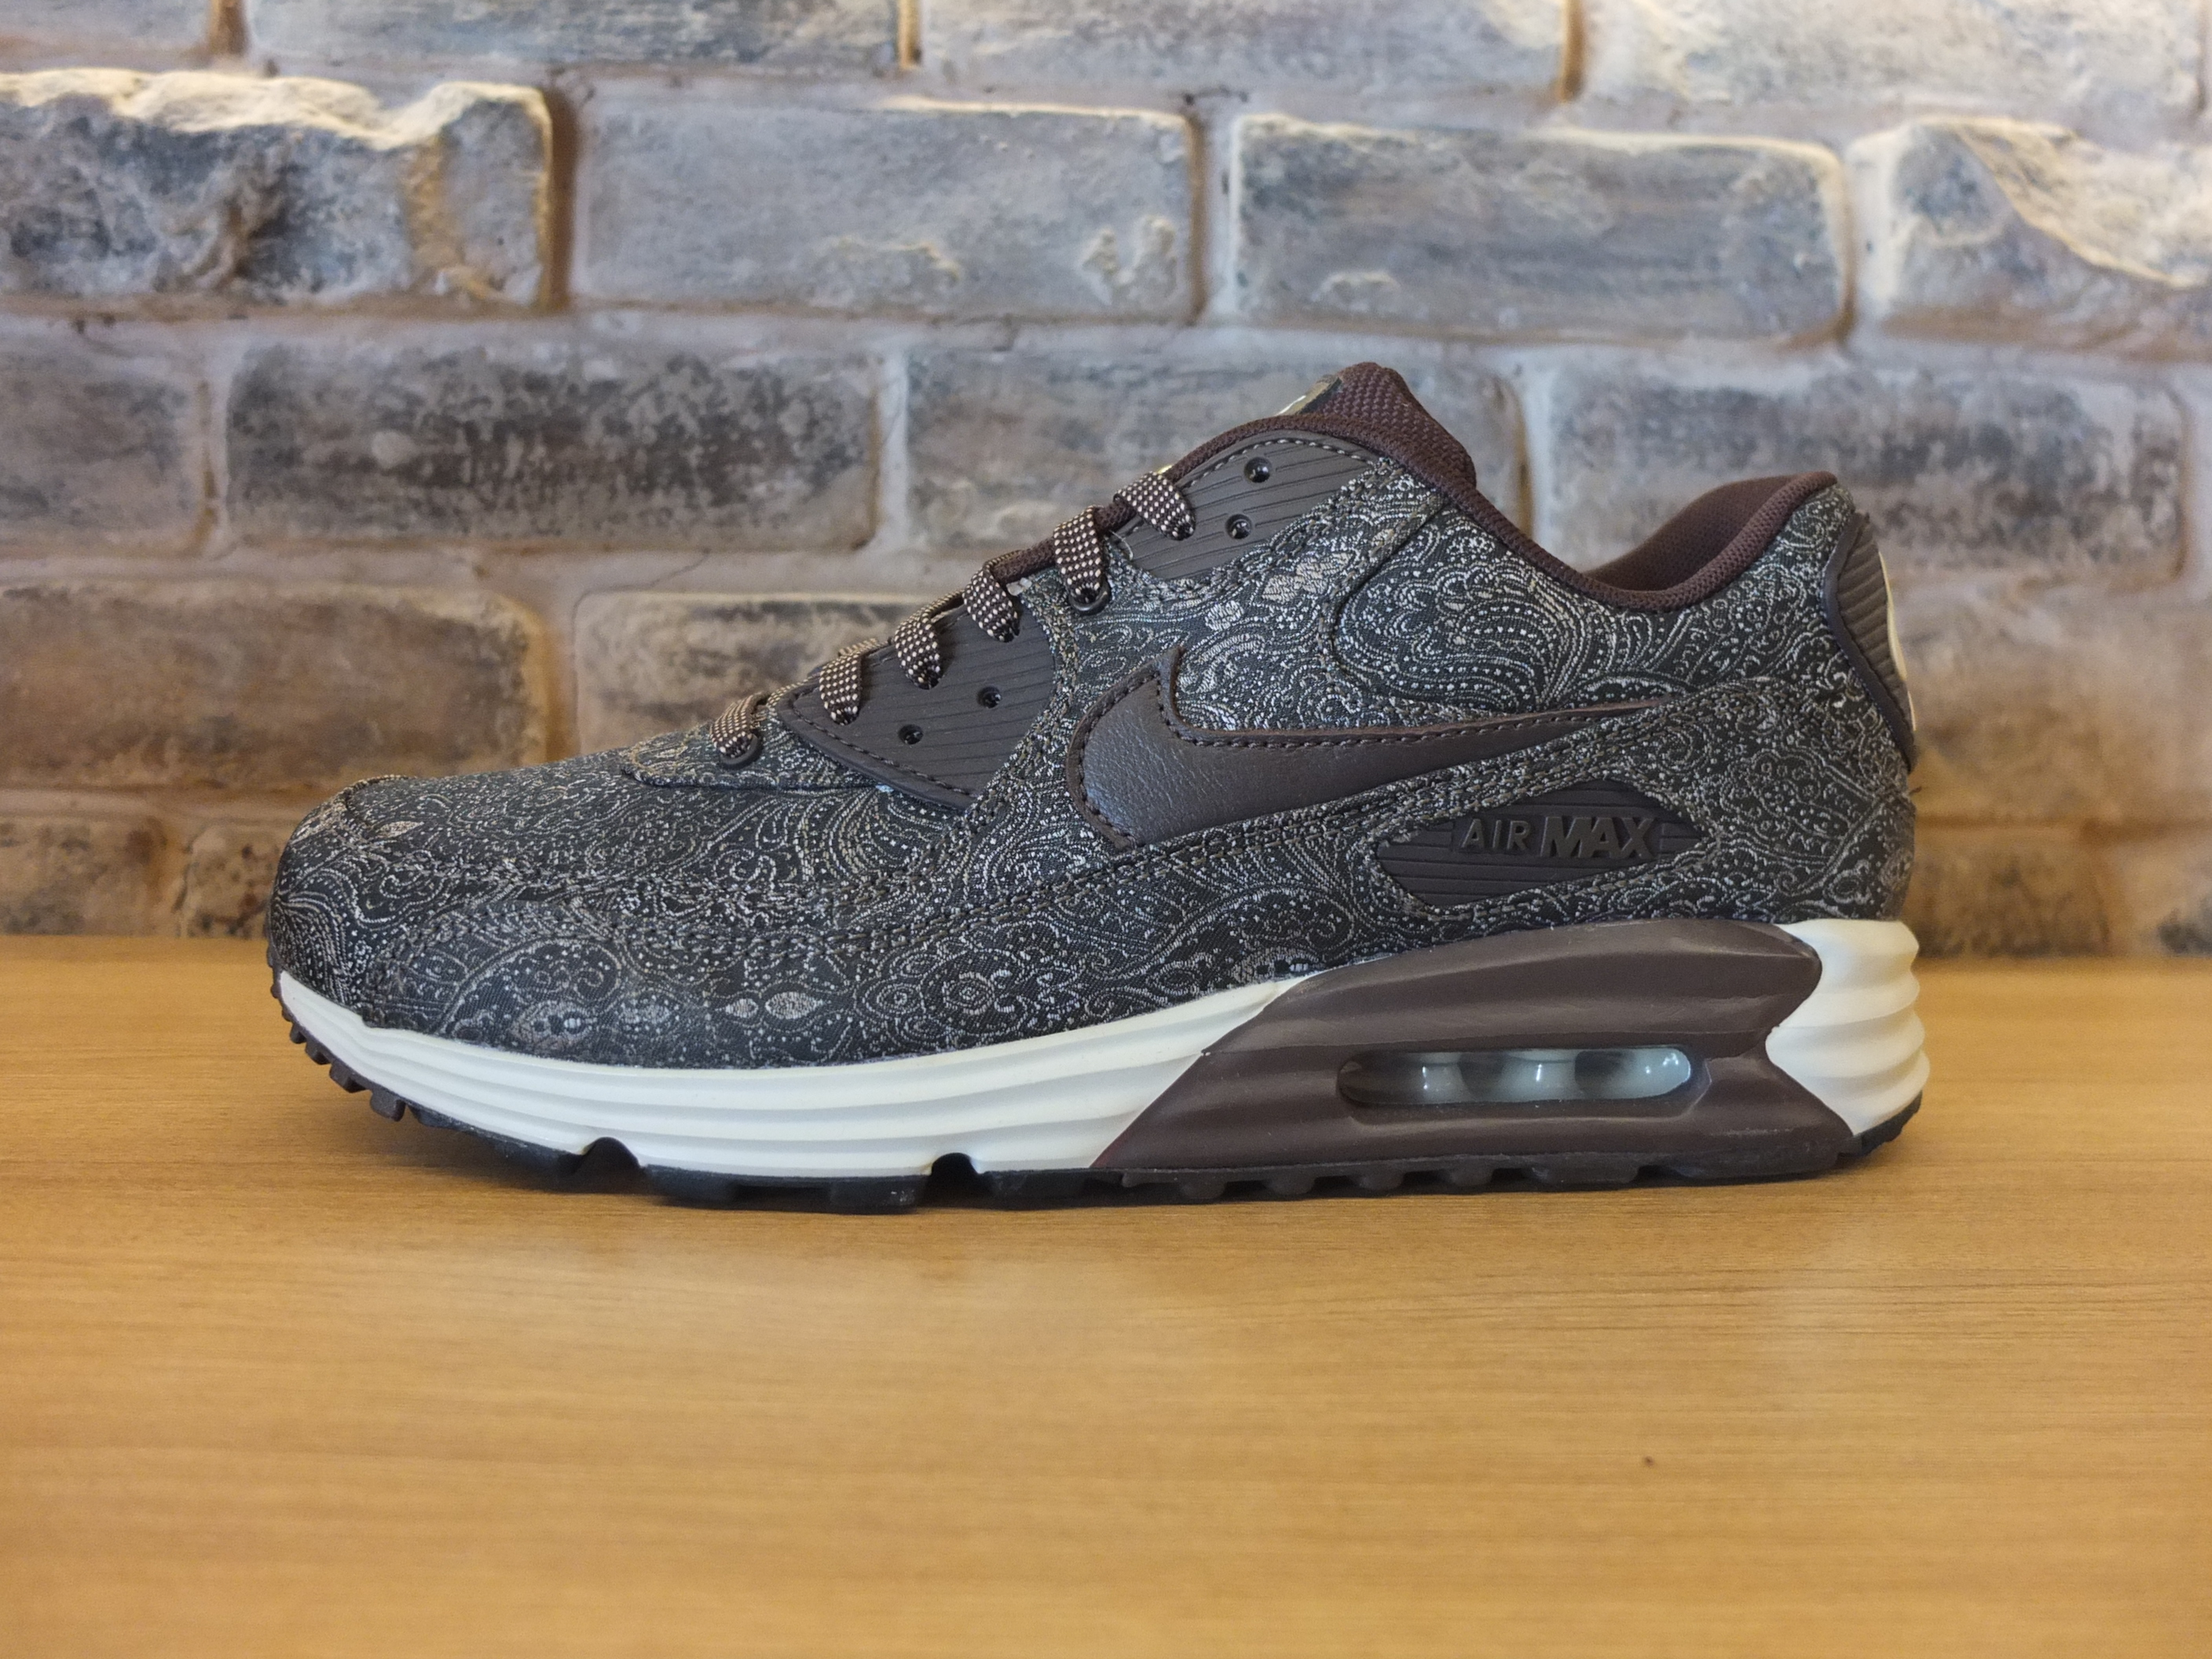 promo code 899a9 dcc4e Nike Air Max Lunar90  Suit and Tie  pack   Kickspotting